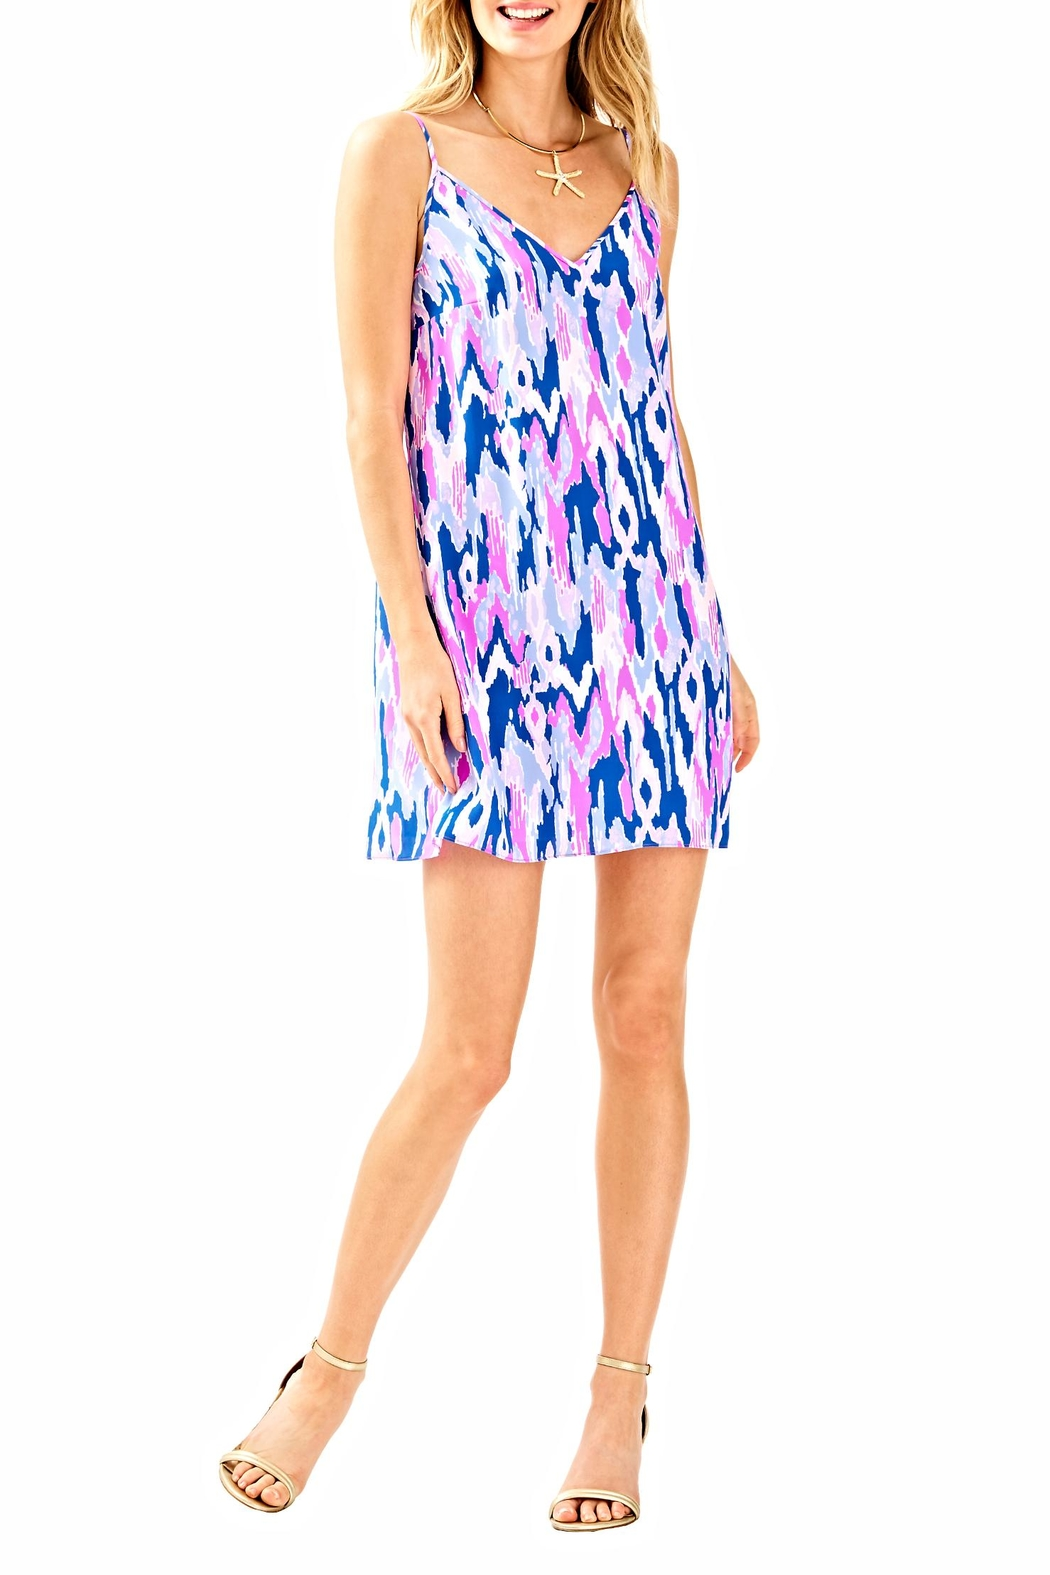 Lilly Pulitzer Lela Silk Dress - Back Cropped Image